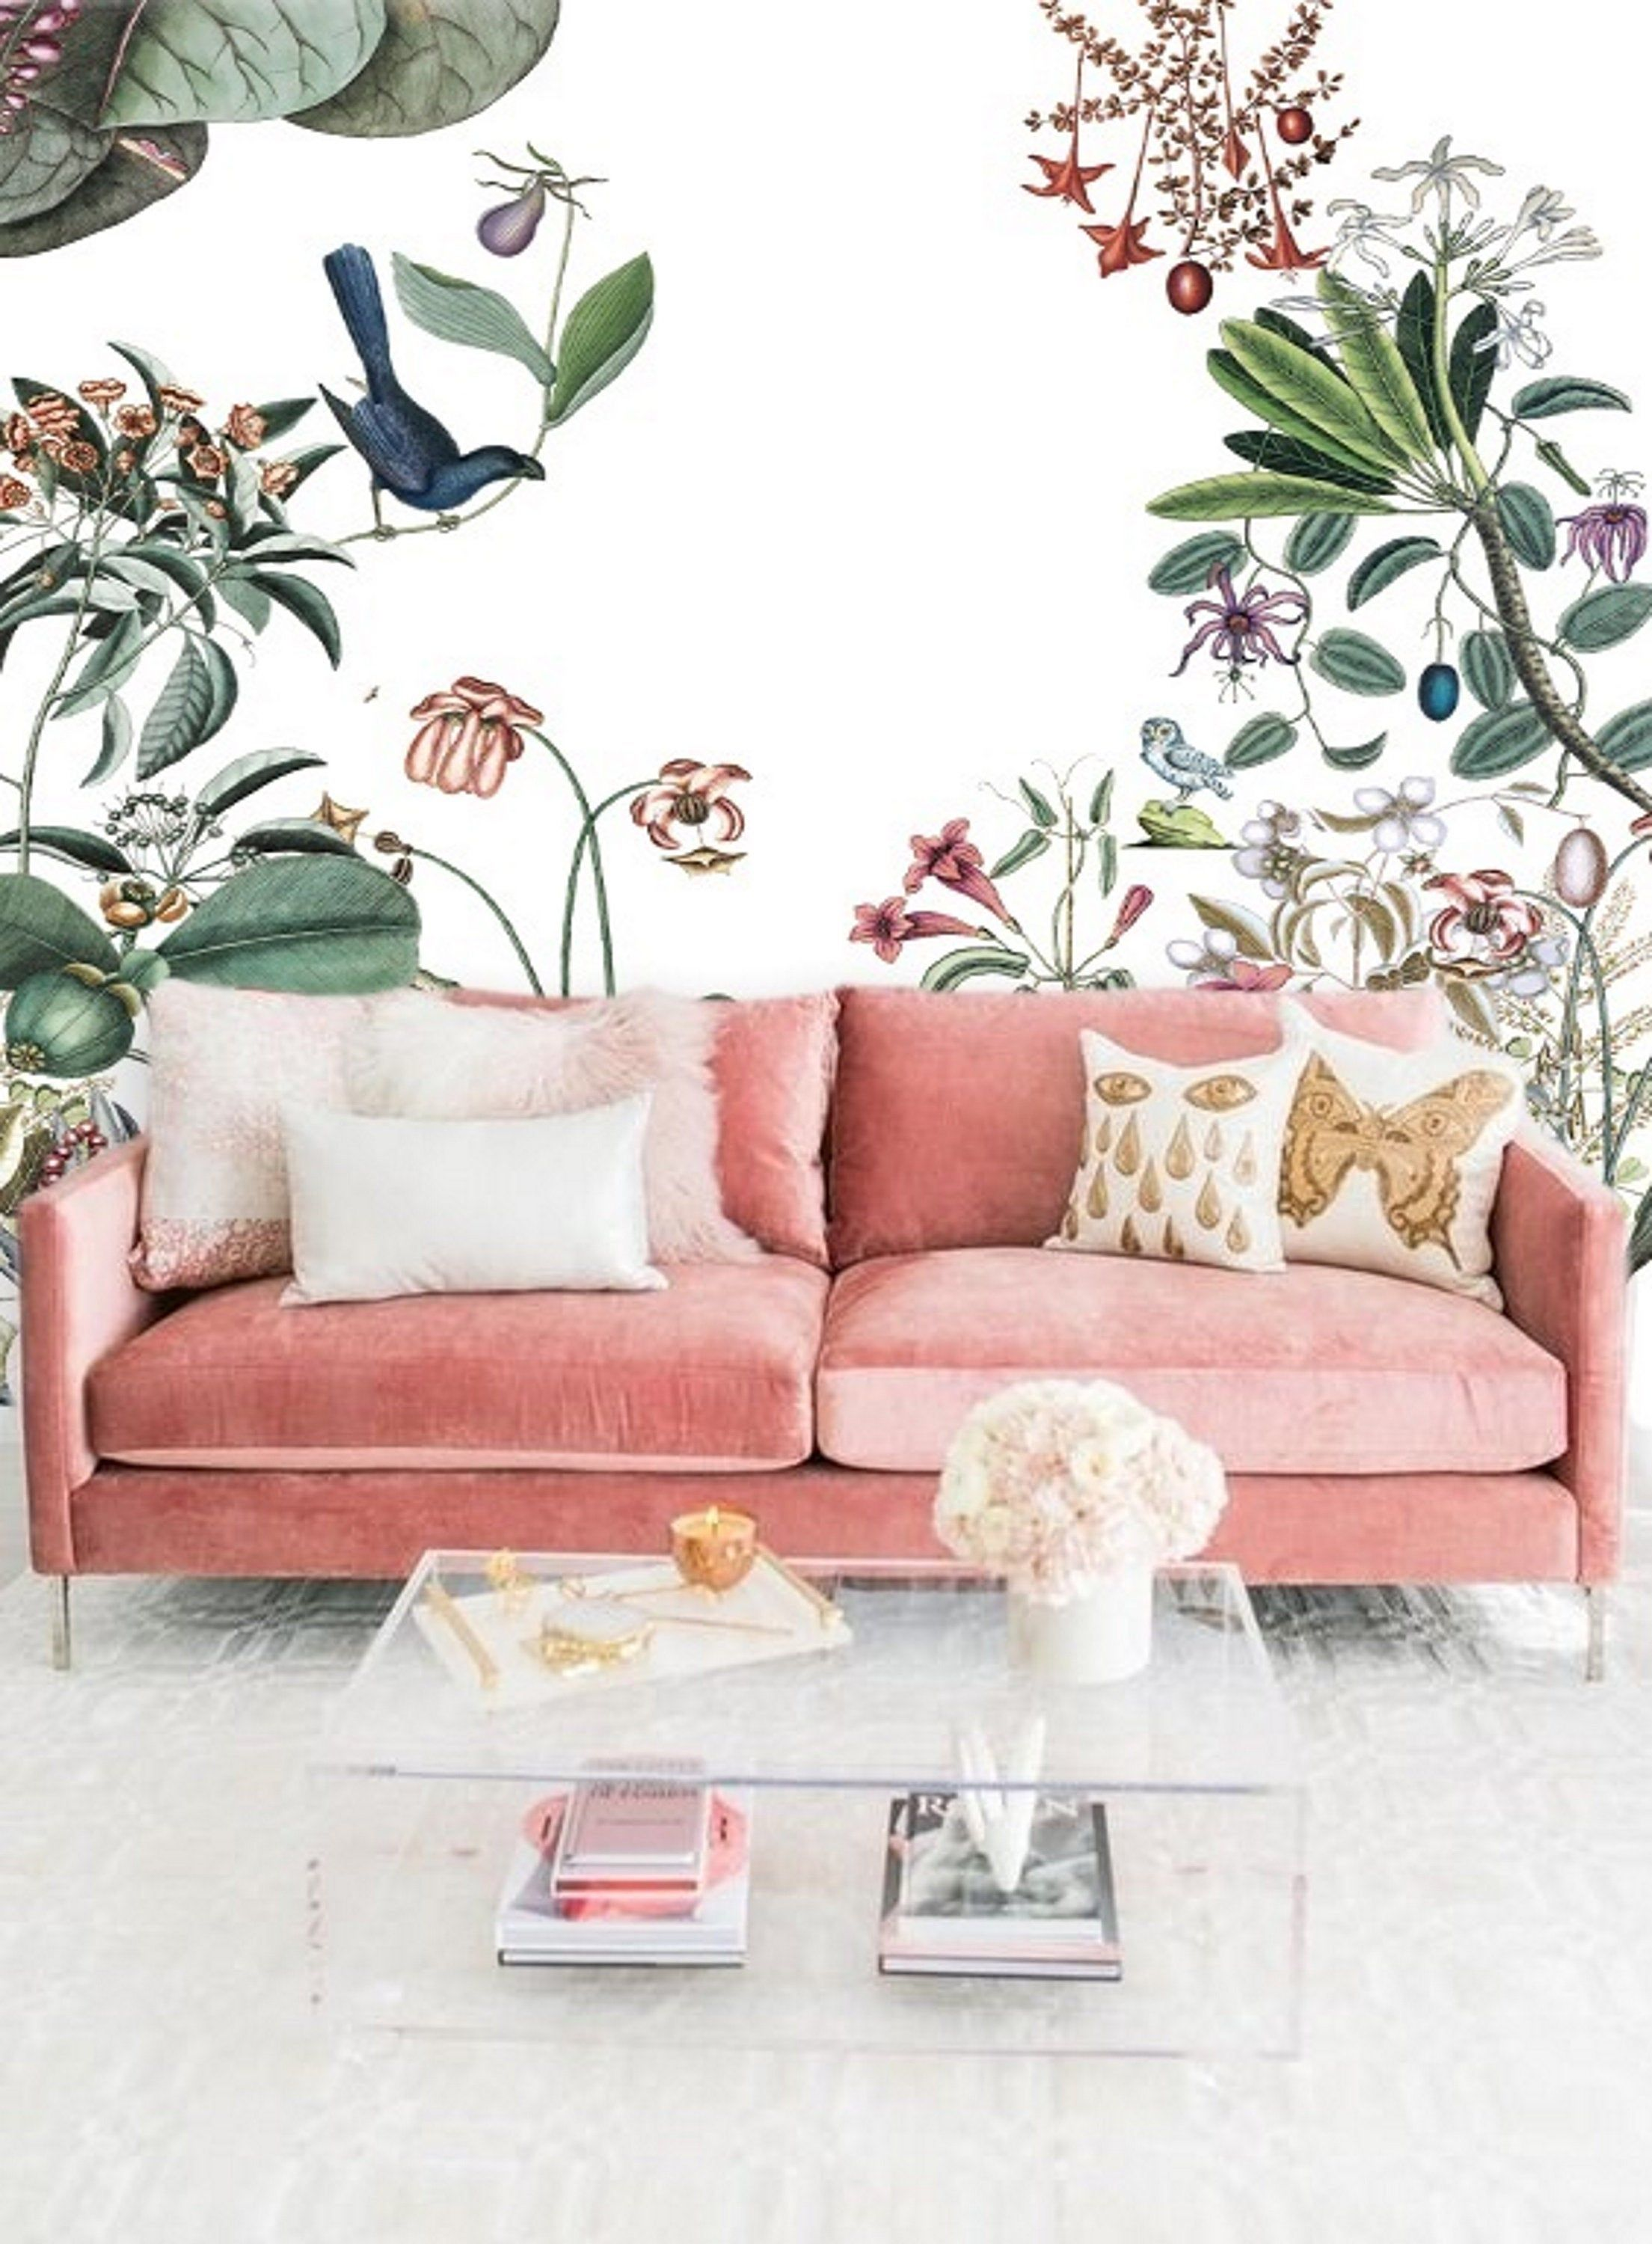 Wall Paper Large Floral Wallpaper Mural Remove Wallpaper Peel Etsy Large Floral Wallpaper Mural Wallpaper Removable Wallpaper